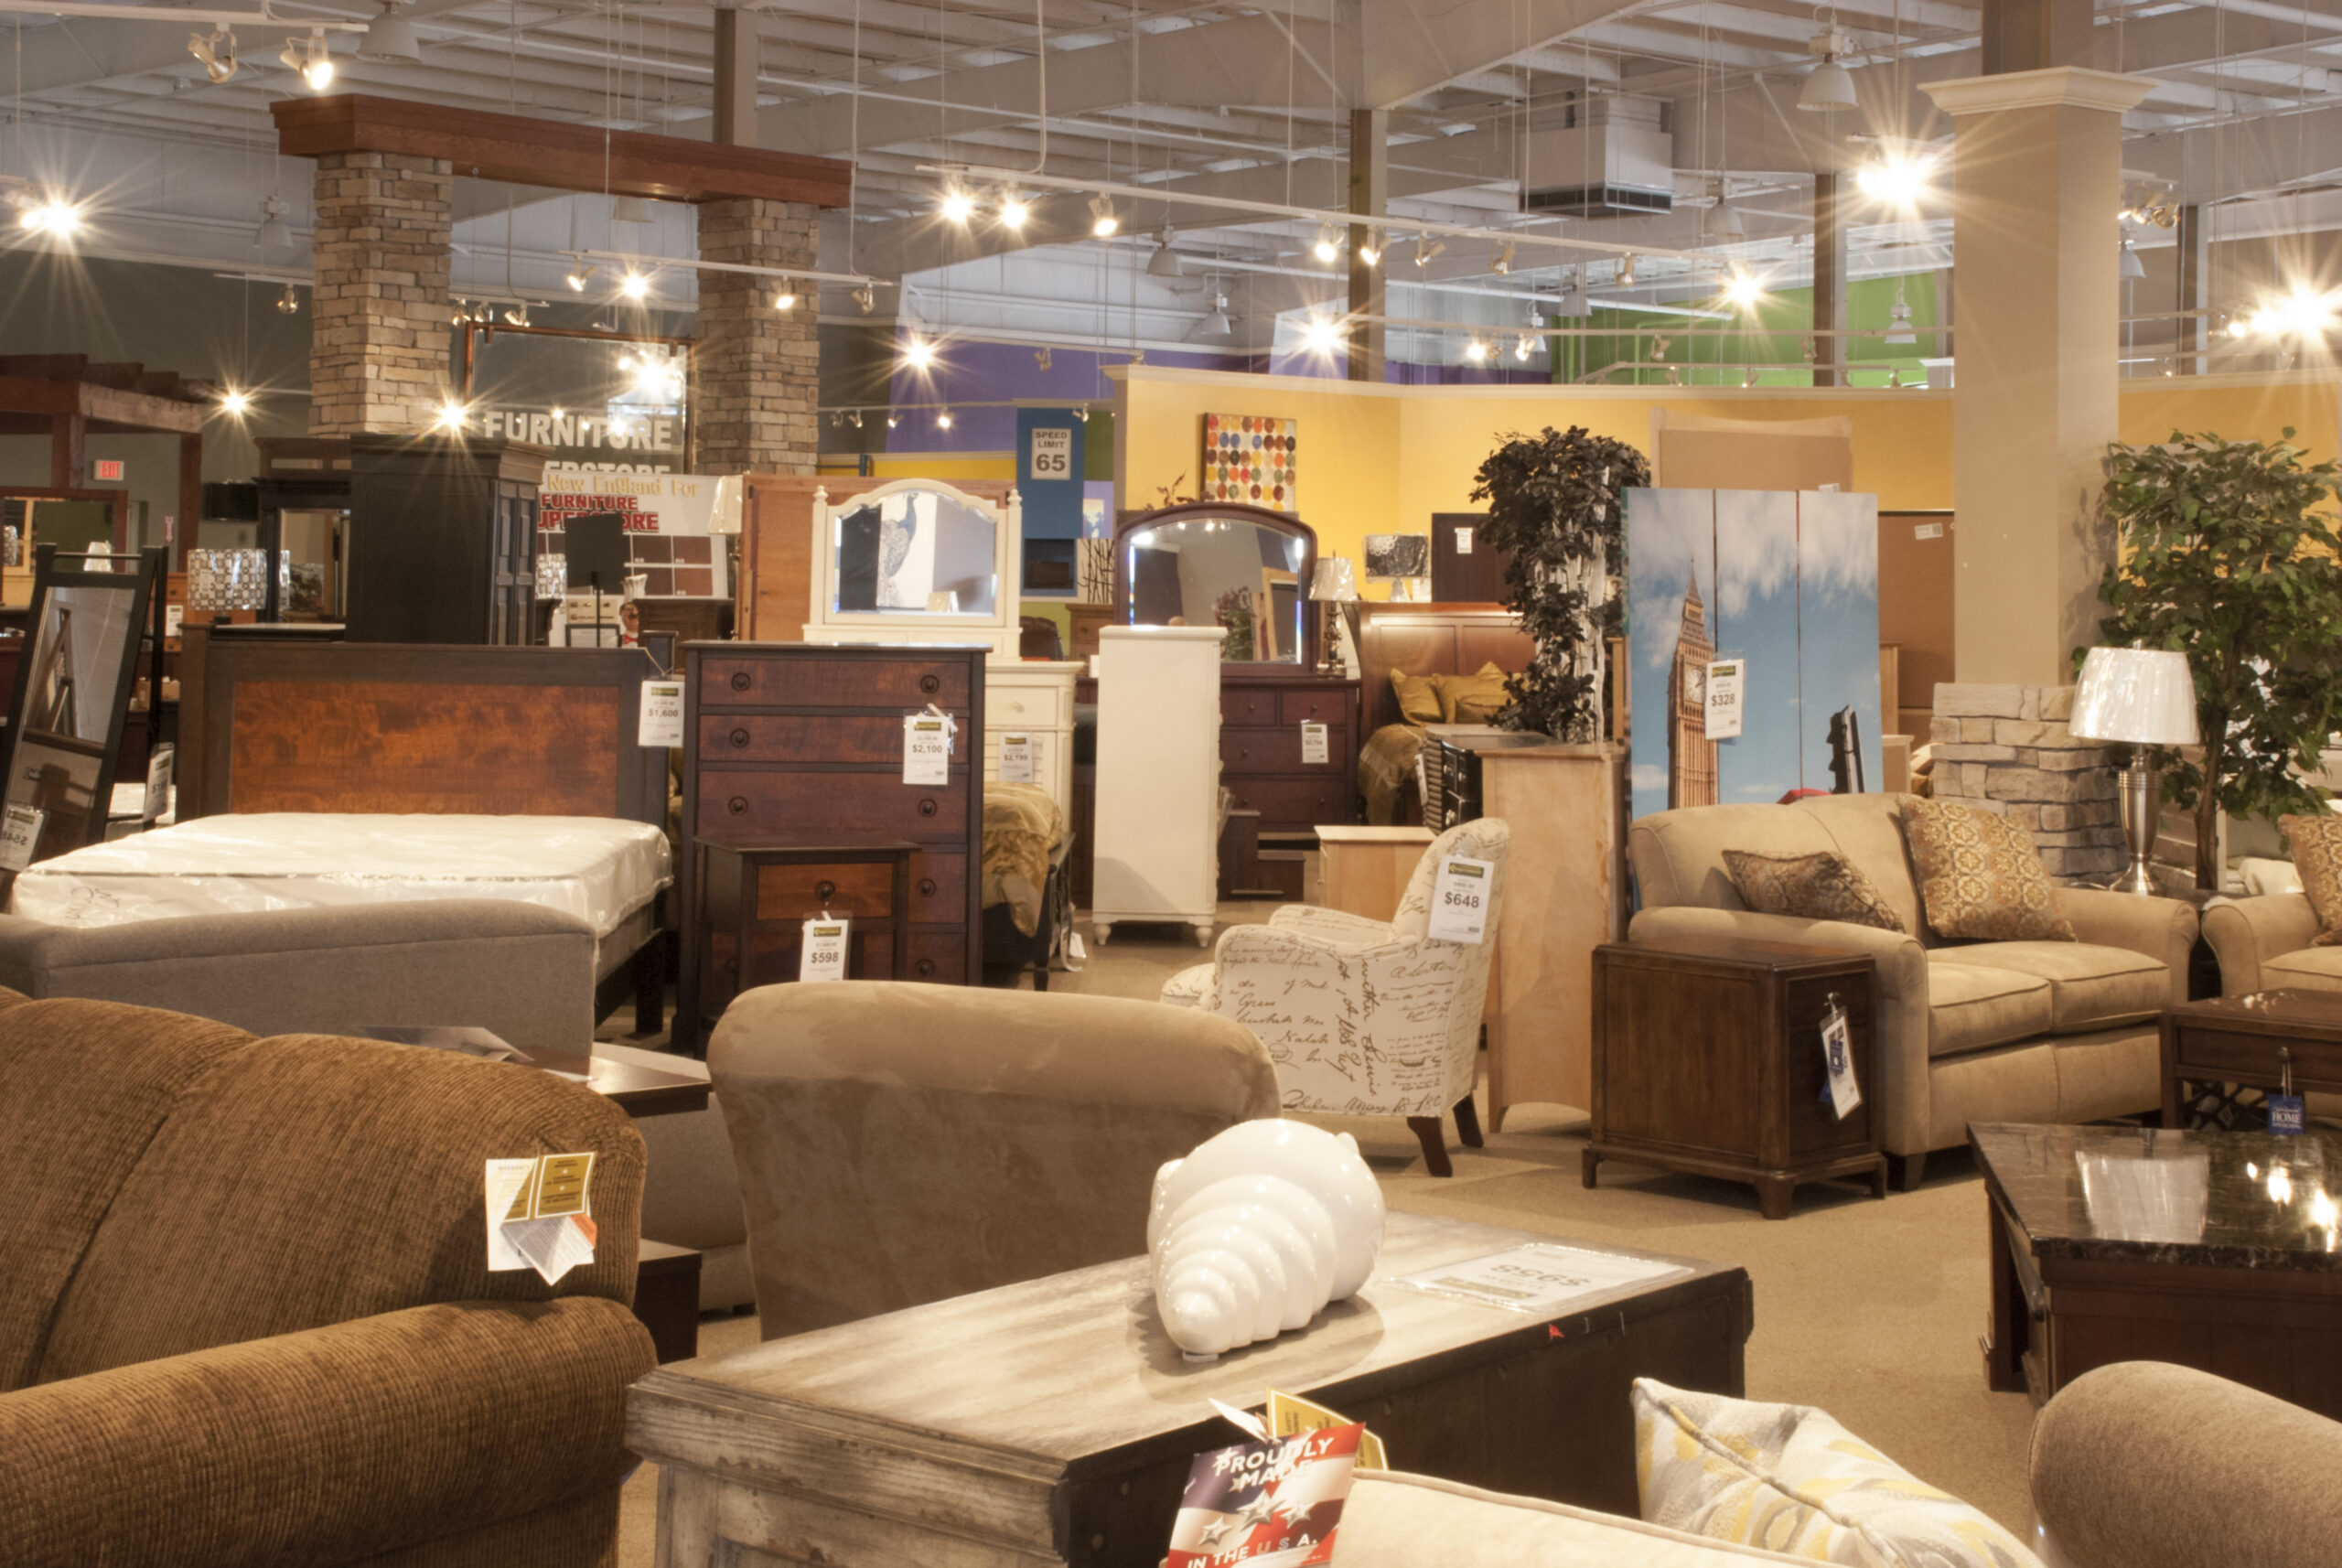 Lighting Upgrades Can Help Your Business Save Energy and Money